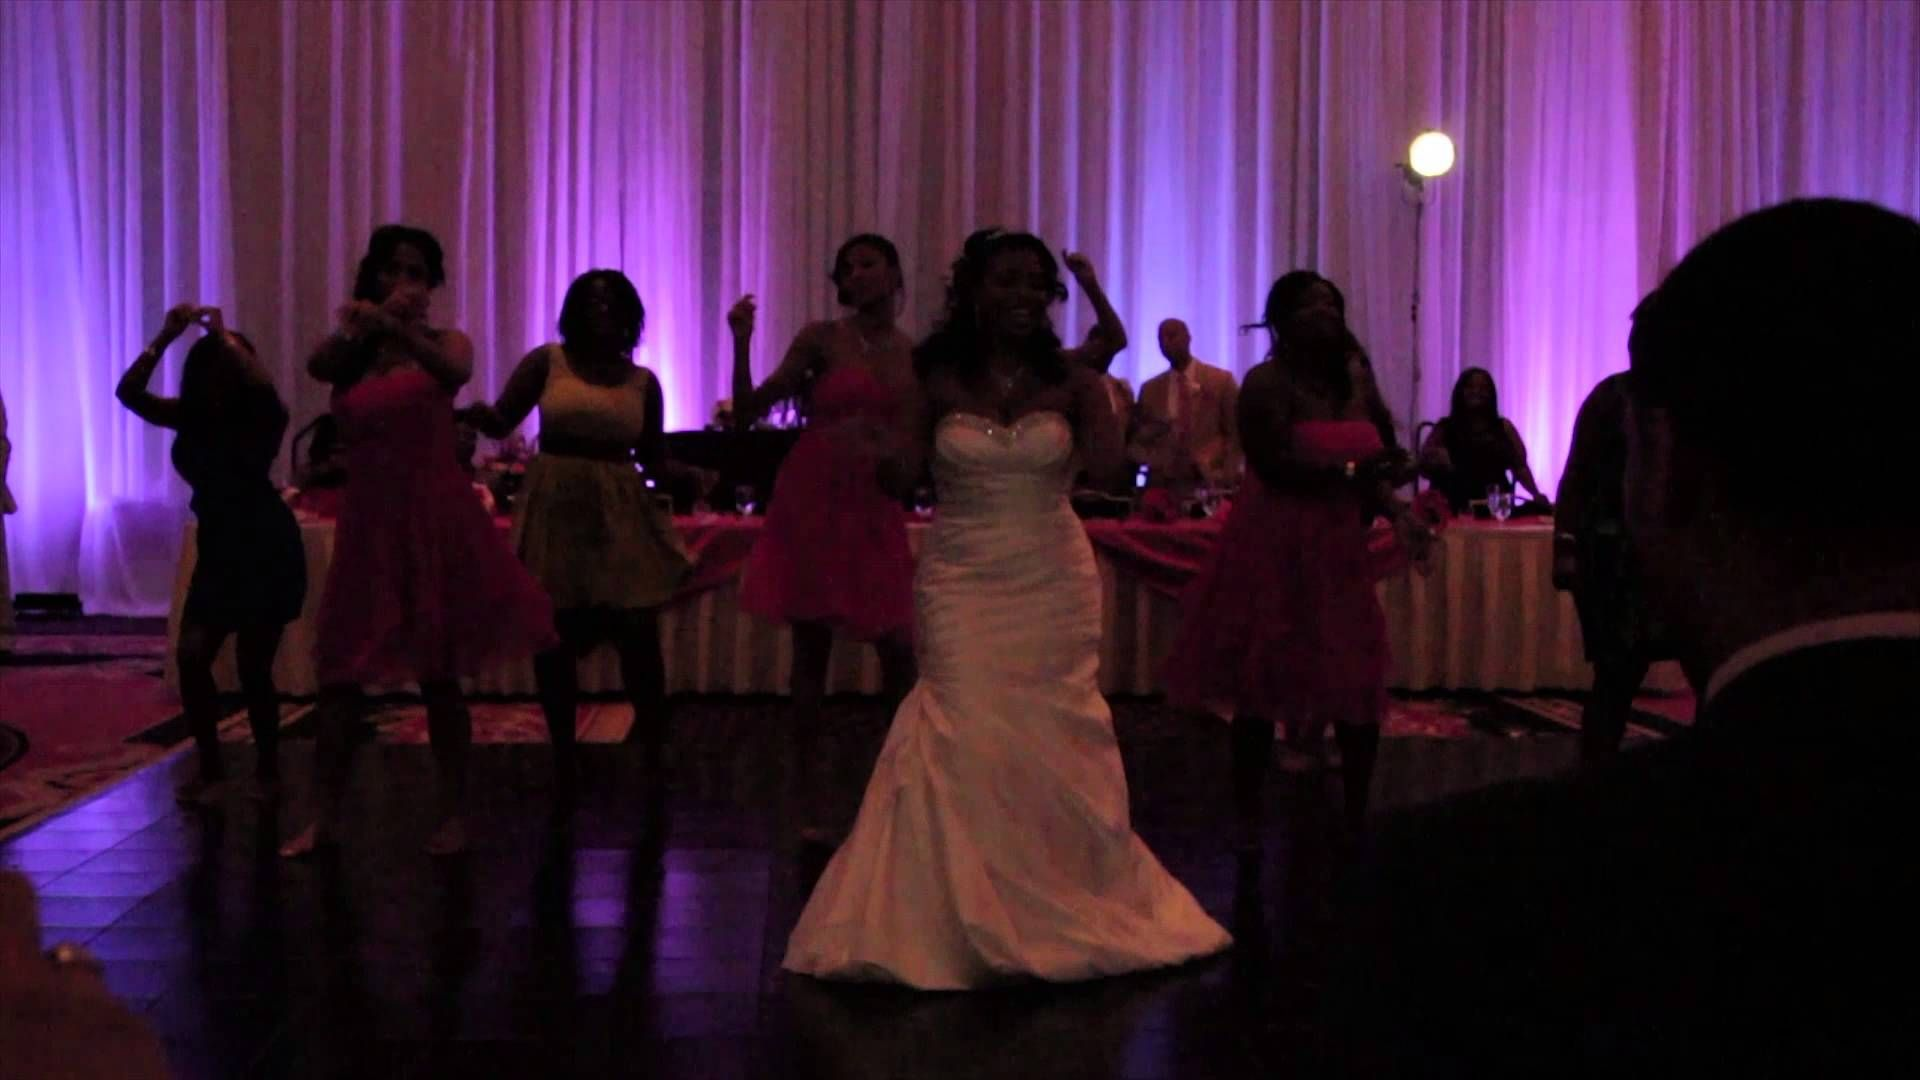 Love On Top Bride Reception Surprise Dance Wedding Dance At The